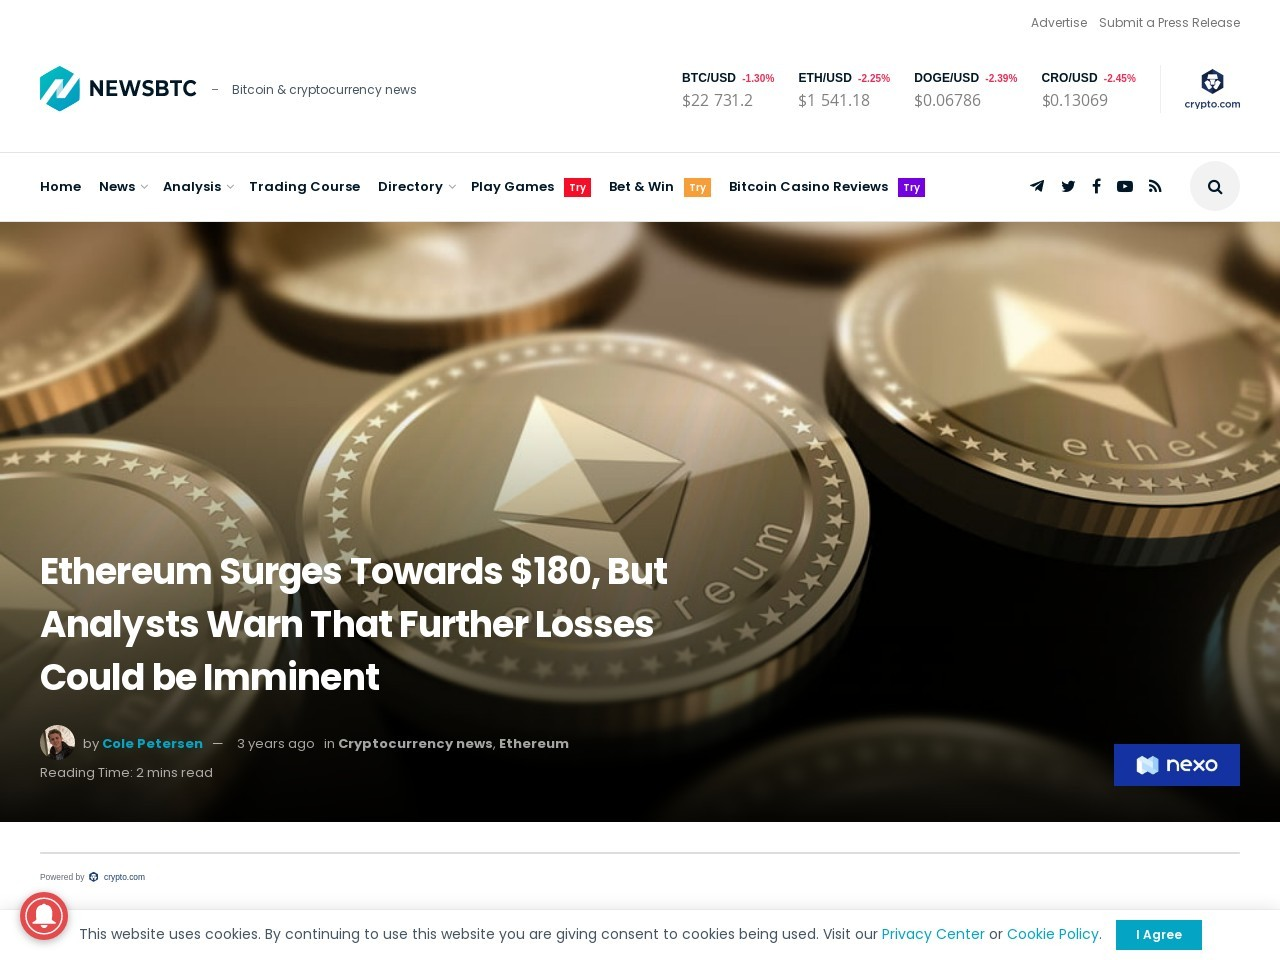 Ethereum Surges Towards $180, But Analysts Warn That Further Losses Could be Imminent